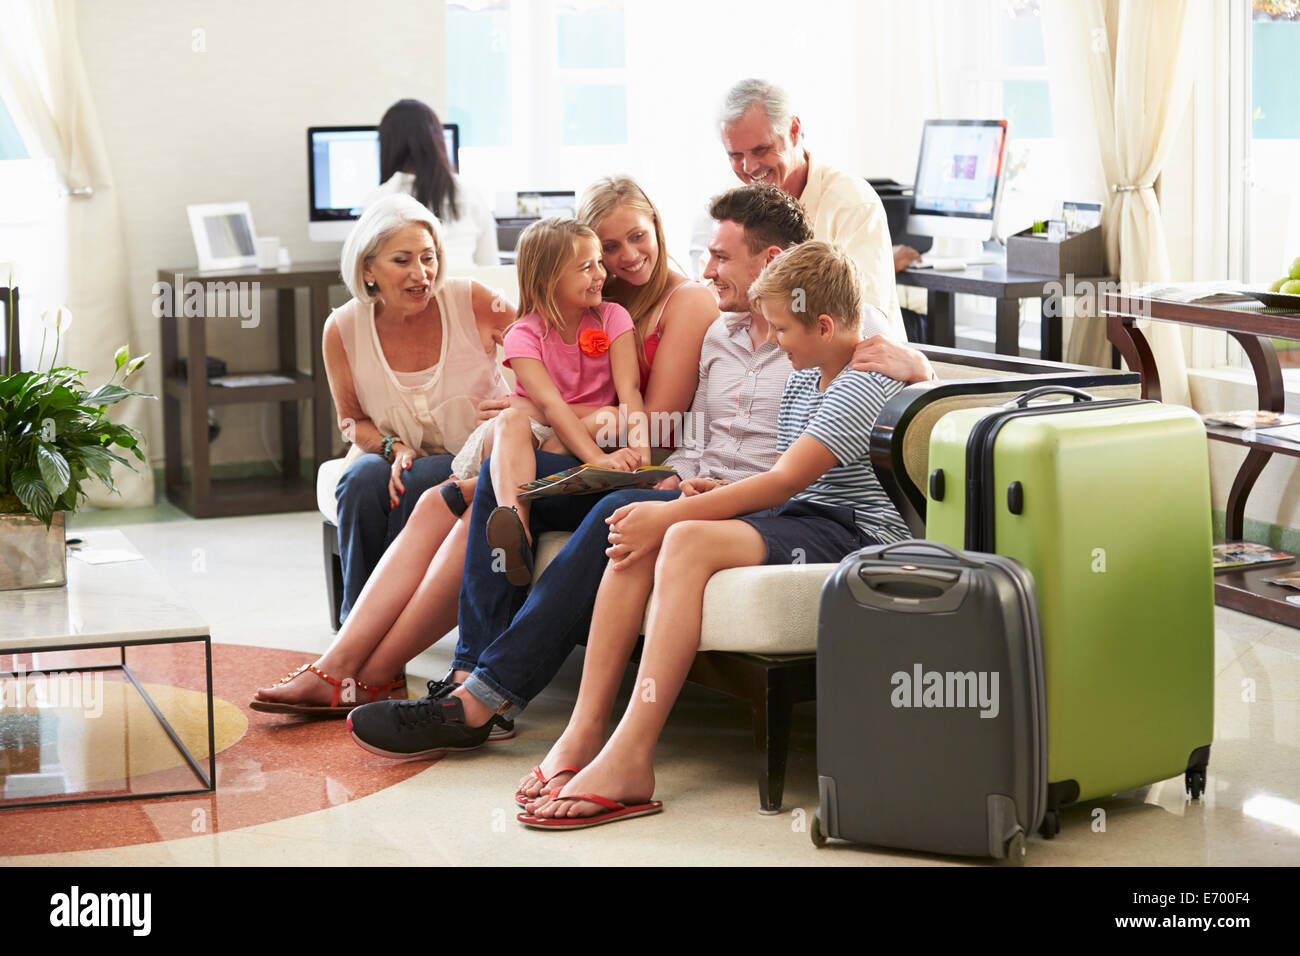 Multi Generation Family Arriving In Hotel Lobby - Stock Image